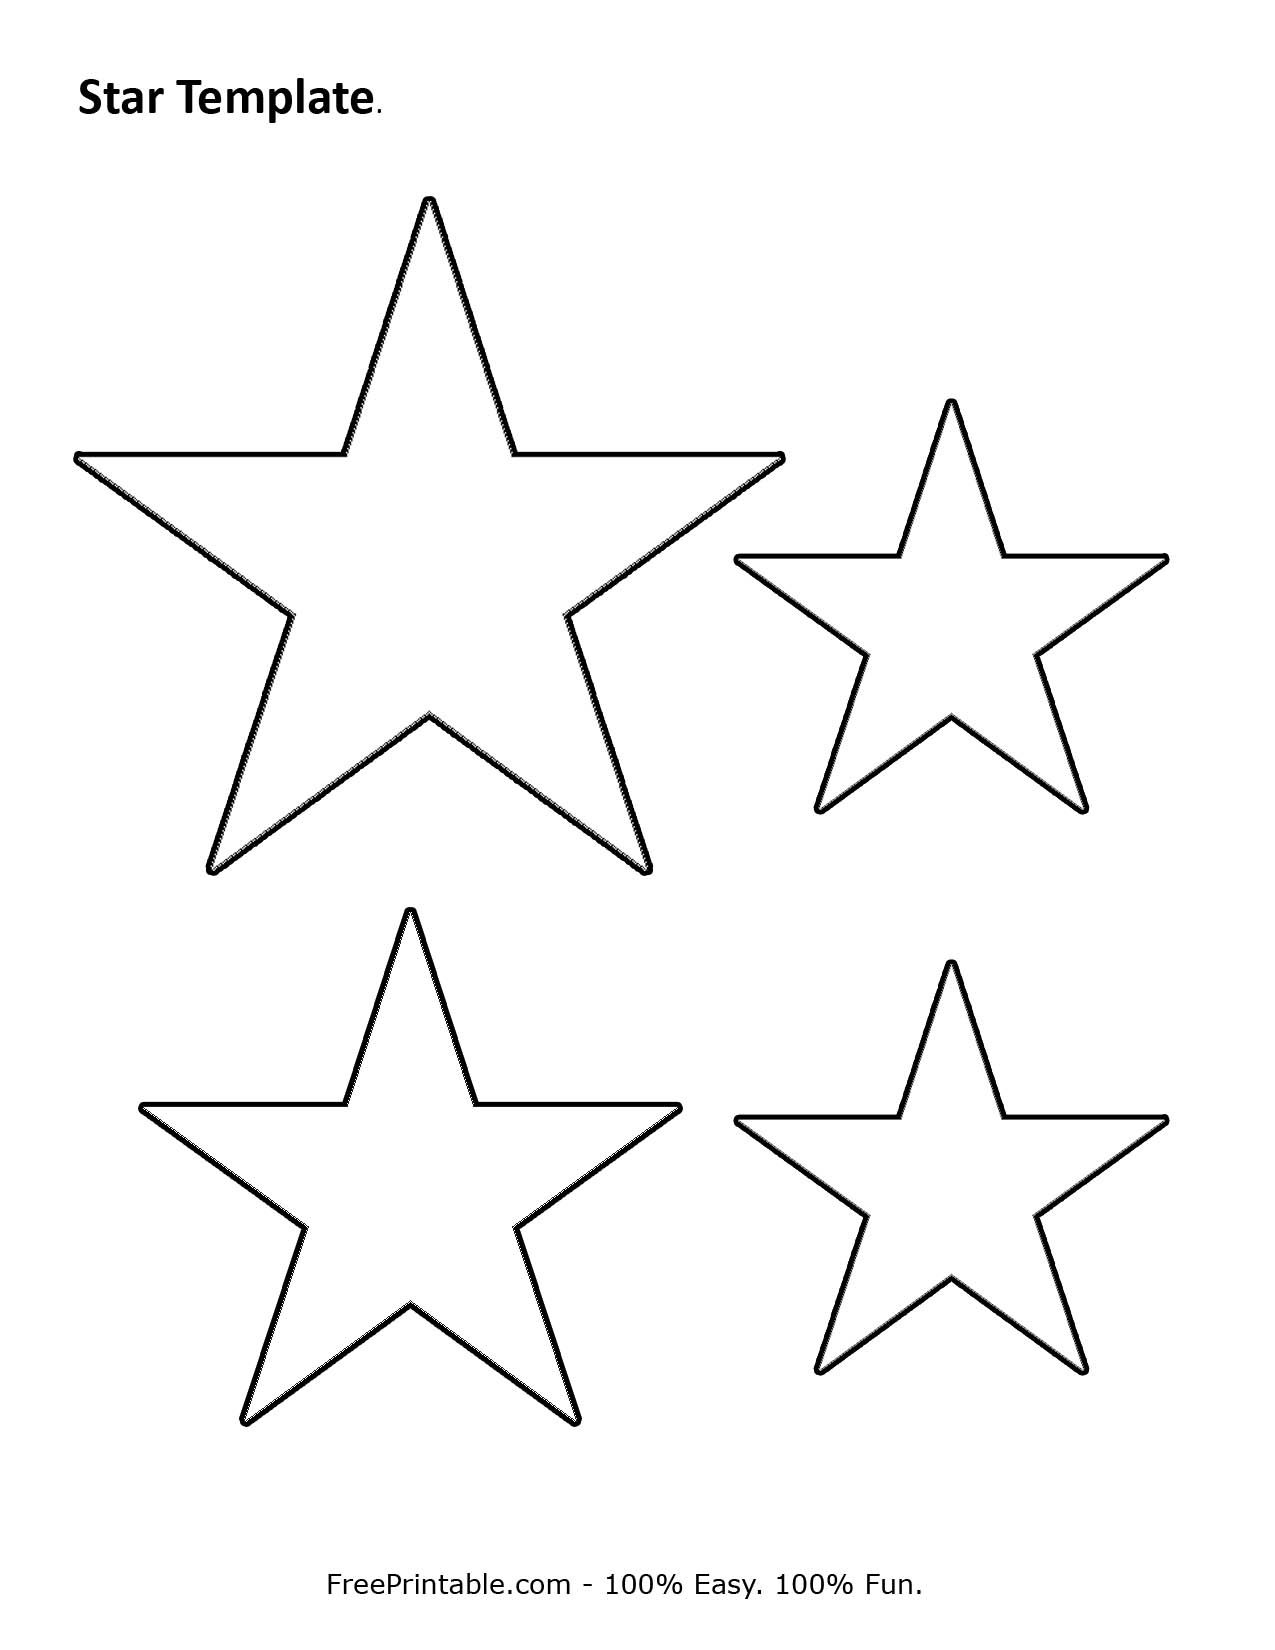 Customize Your Free Printable Star Template | Stencil | Pinterest - Free Printable Stars